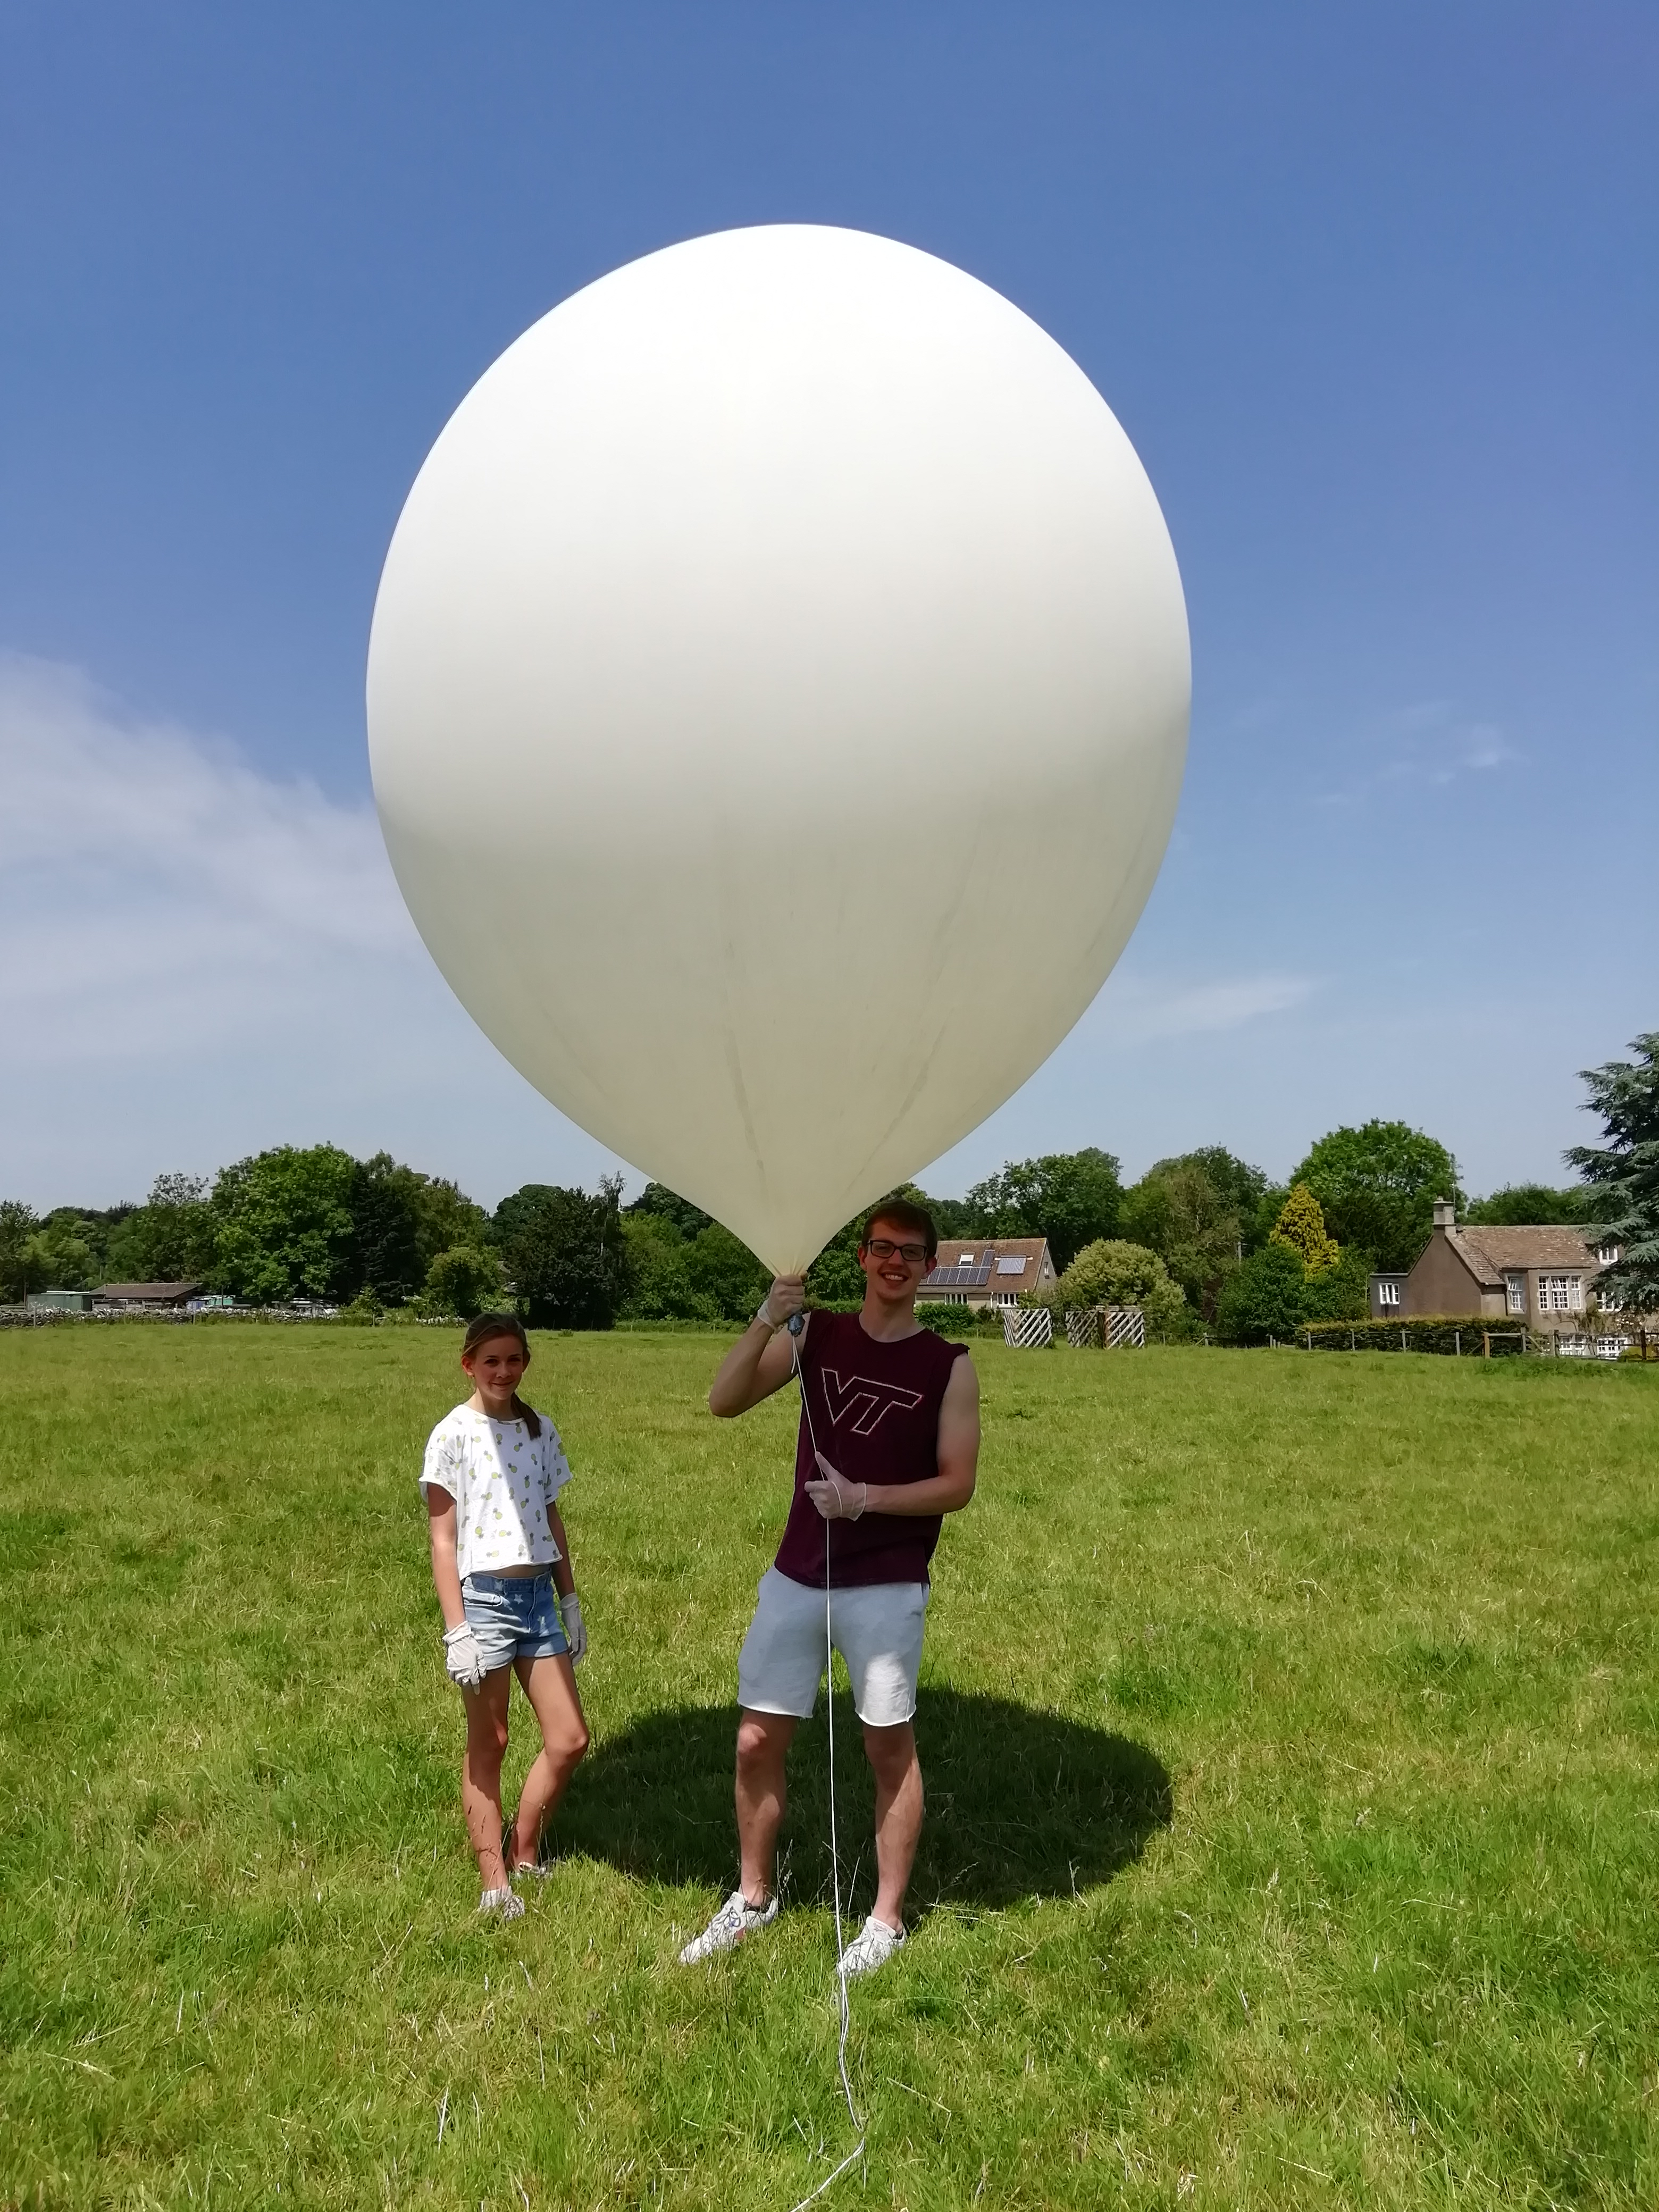 Amelia and Matthew are given the job of hanging onto the inflated balloon until we were ready to launch